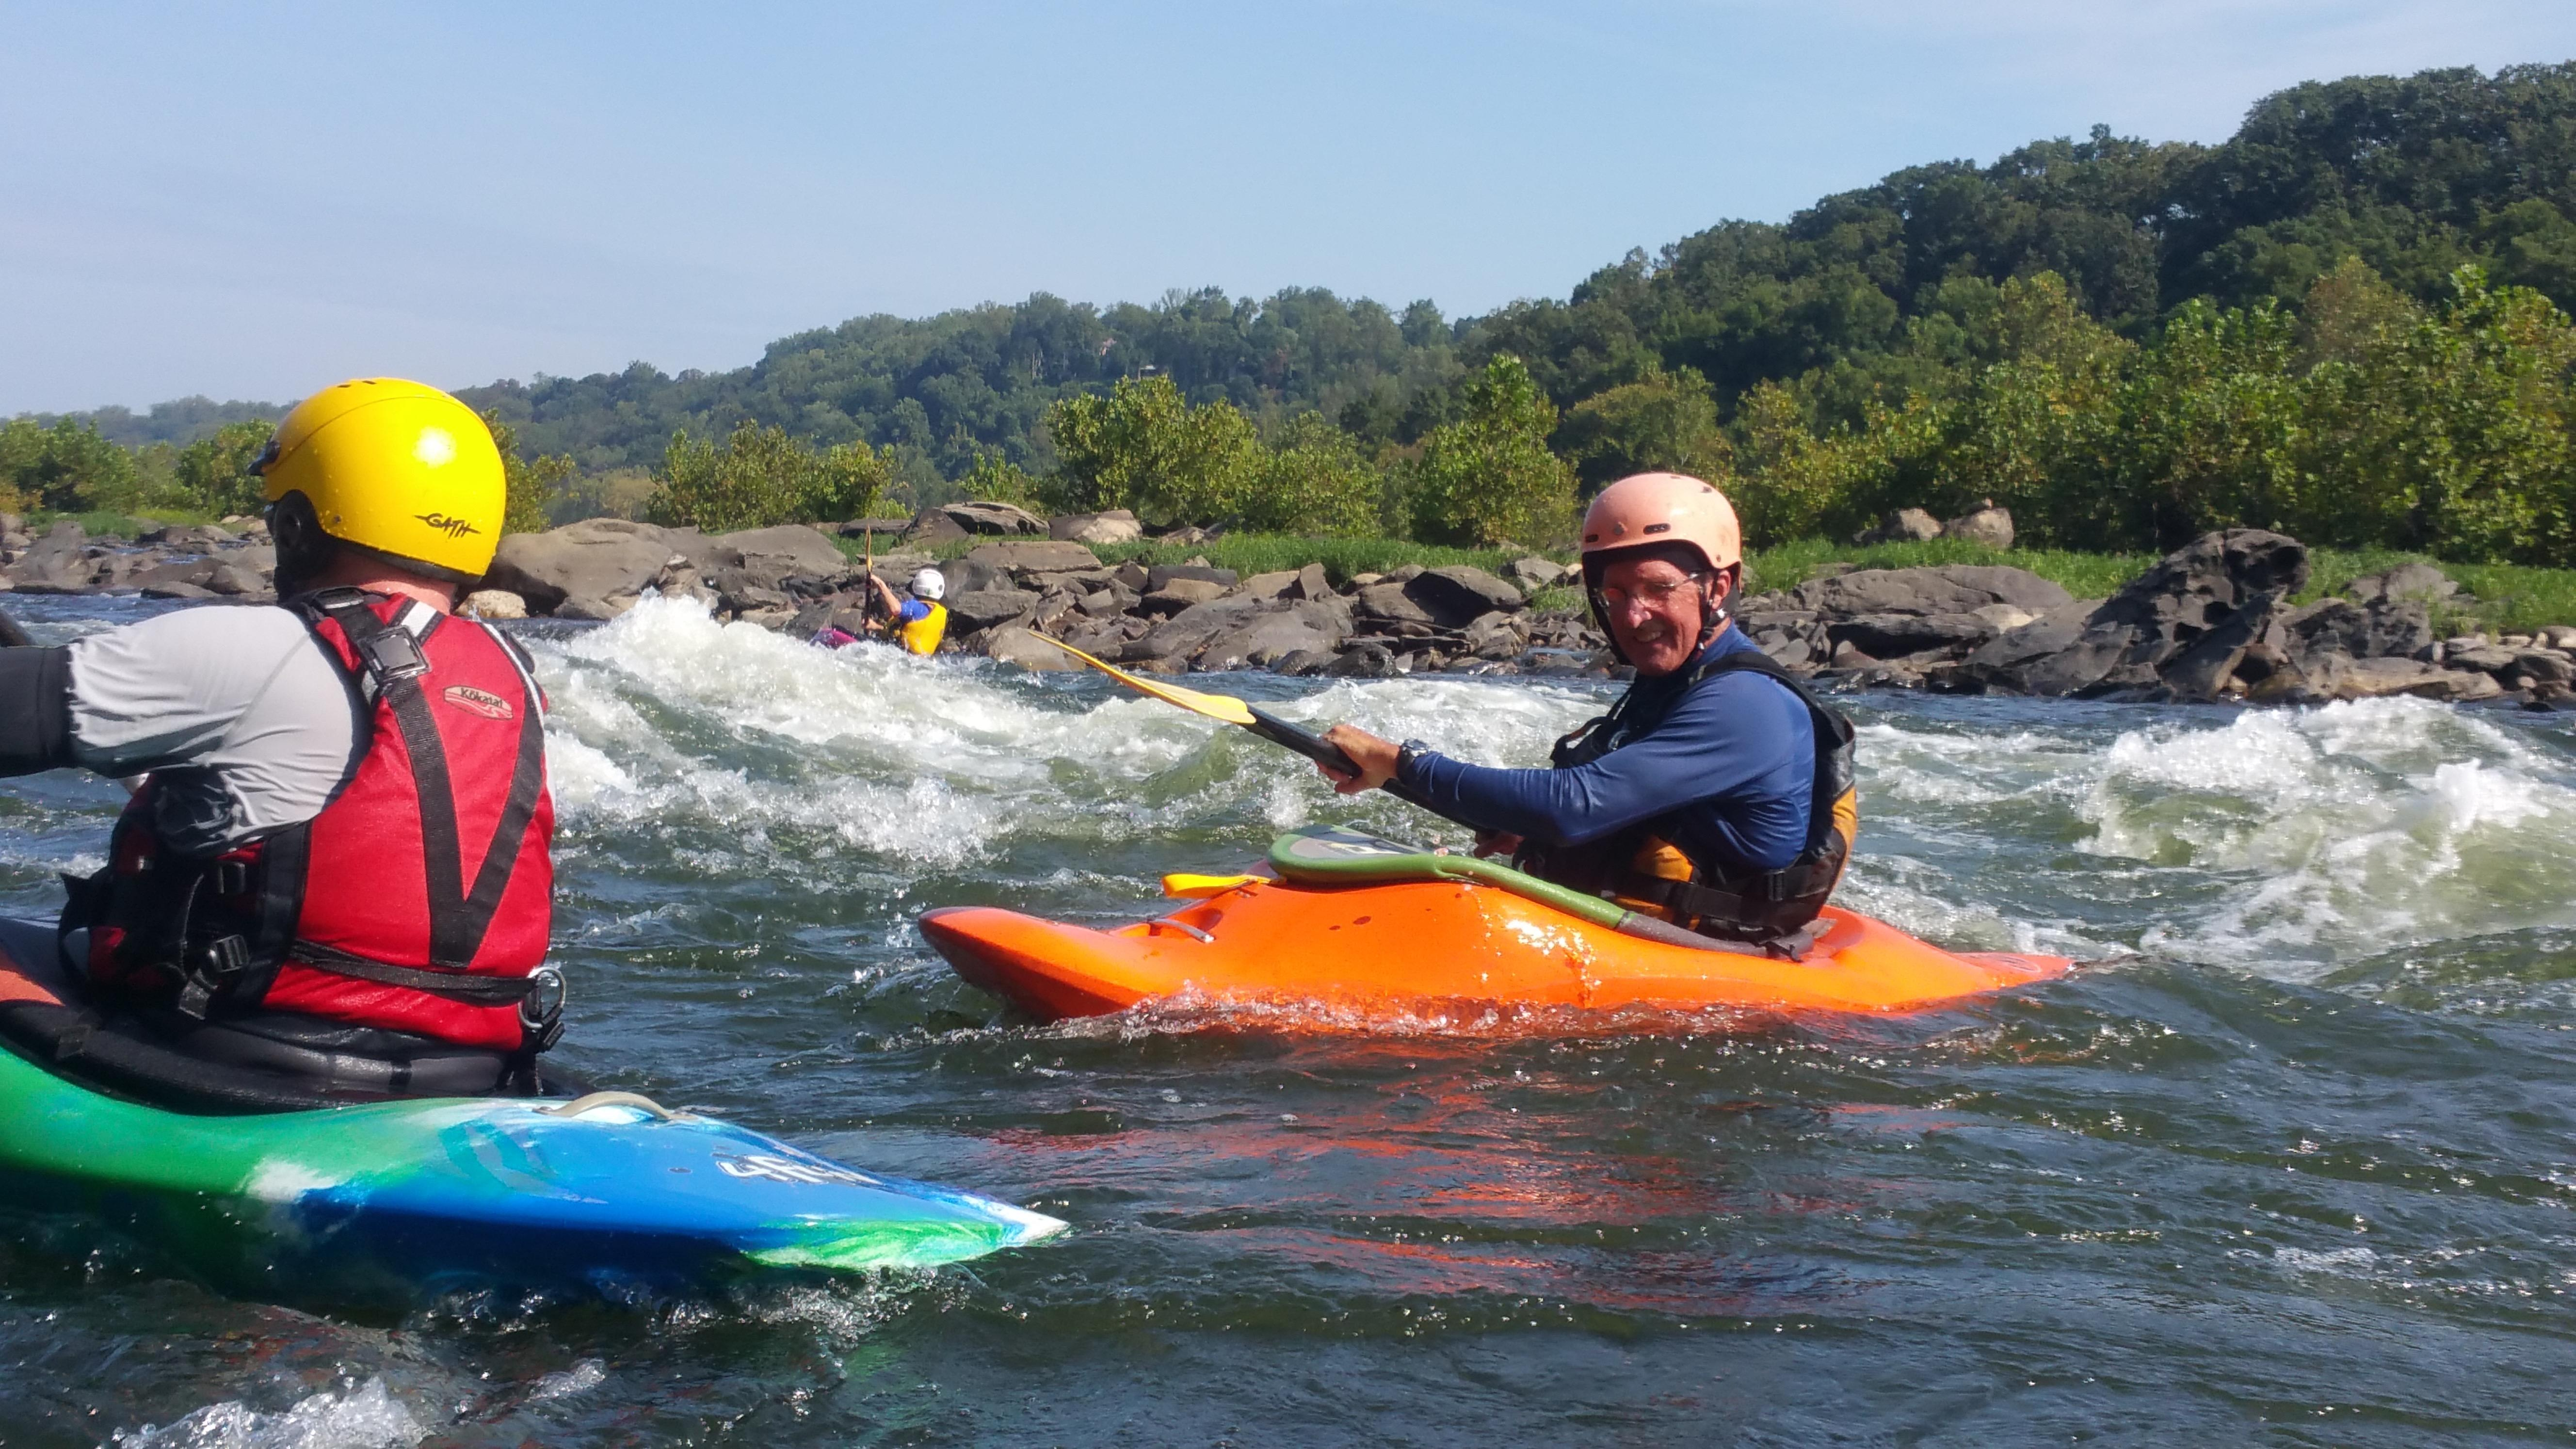 Surfing at the Chutes